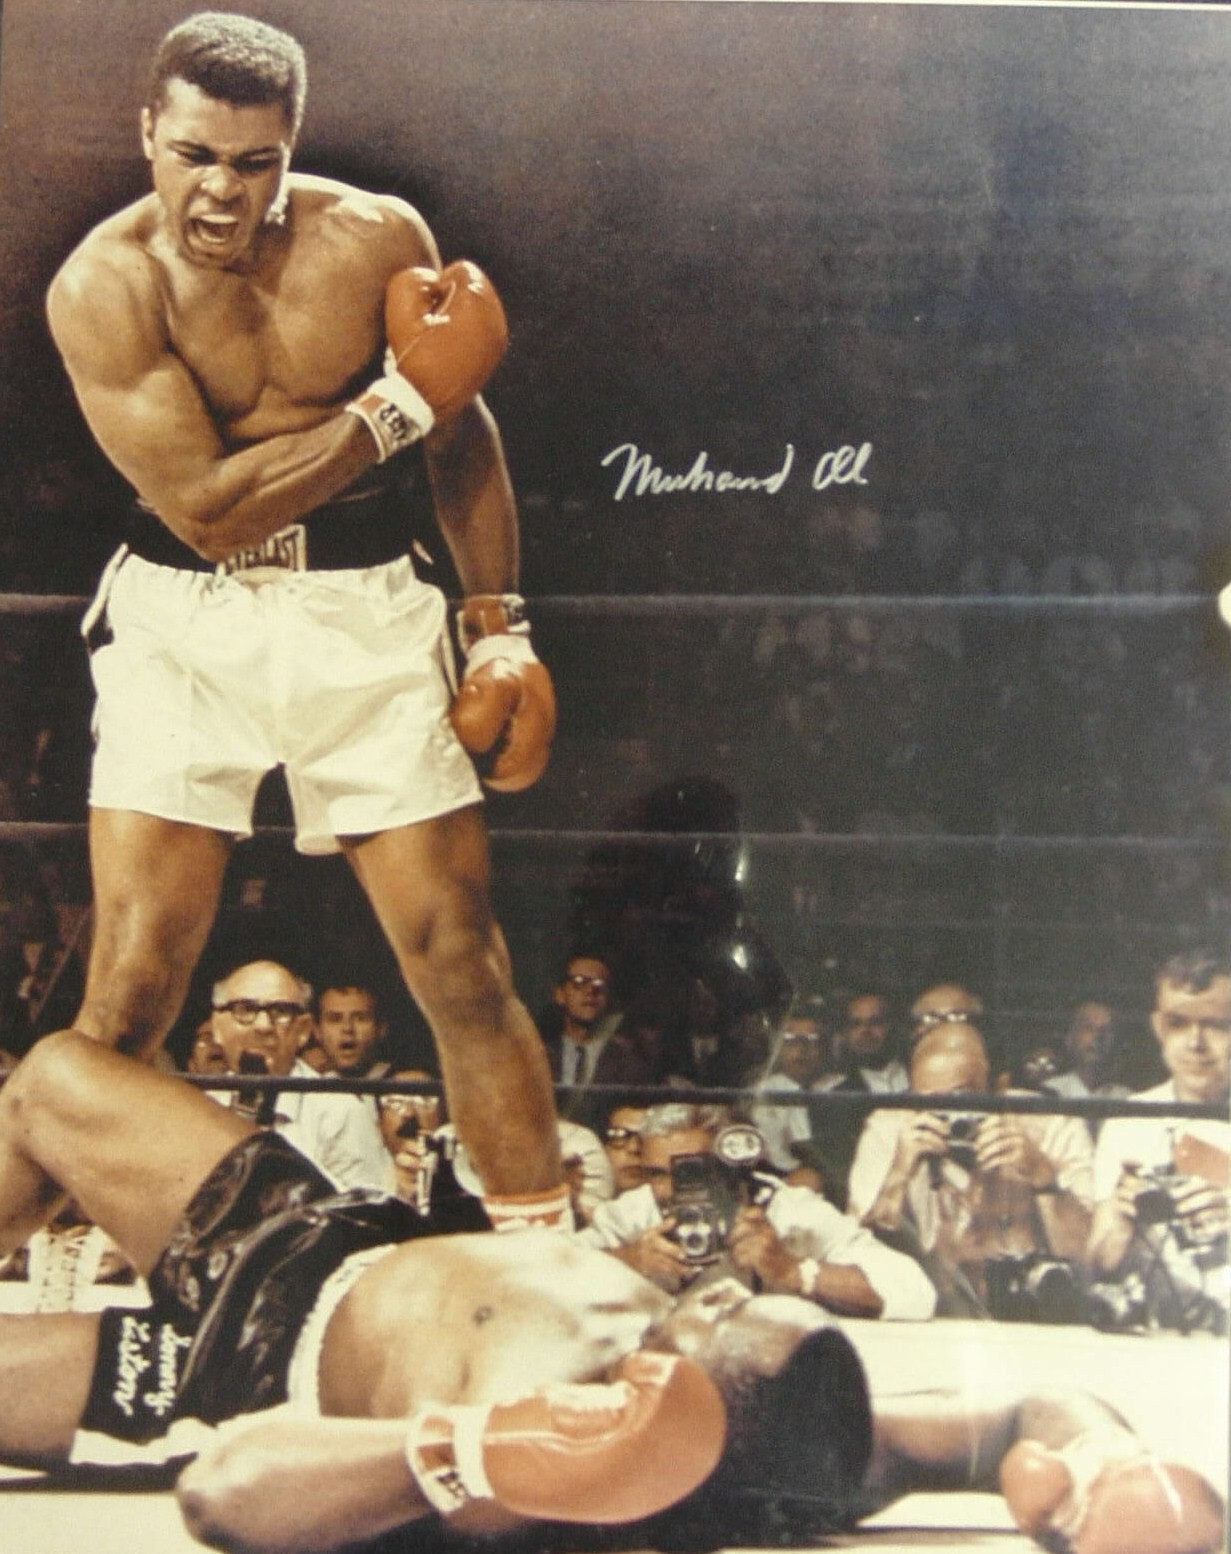 http://1.bp.blogspot.com/-_N-F0Z-F8x0/UBtGLswb-nI/AAAAAAAAmWk/gOYx4nsUeEo/s1600/Muhammad+Ali+showing+the+world+he%27s+the+greatest.jpg